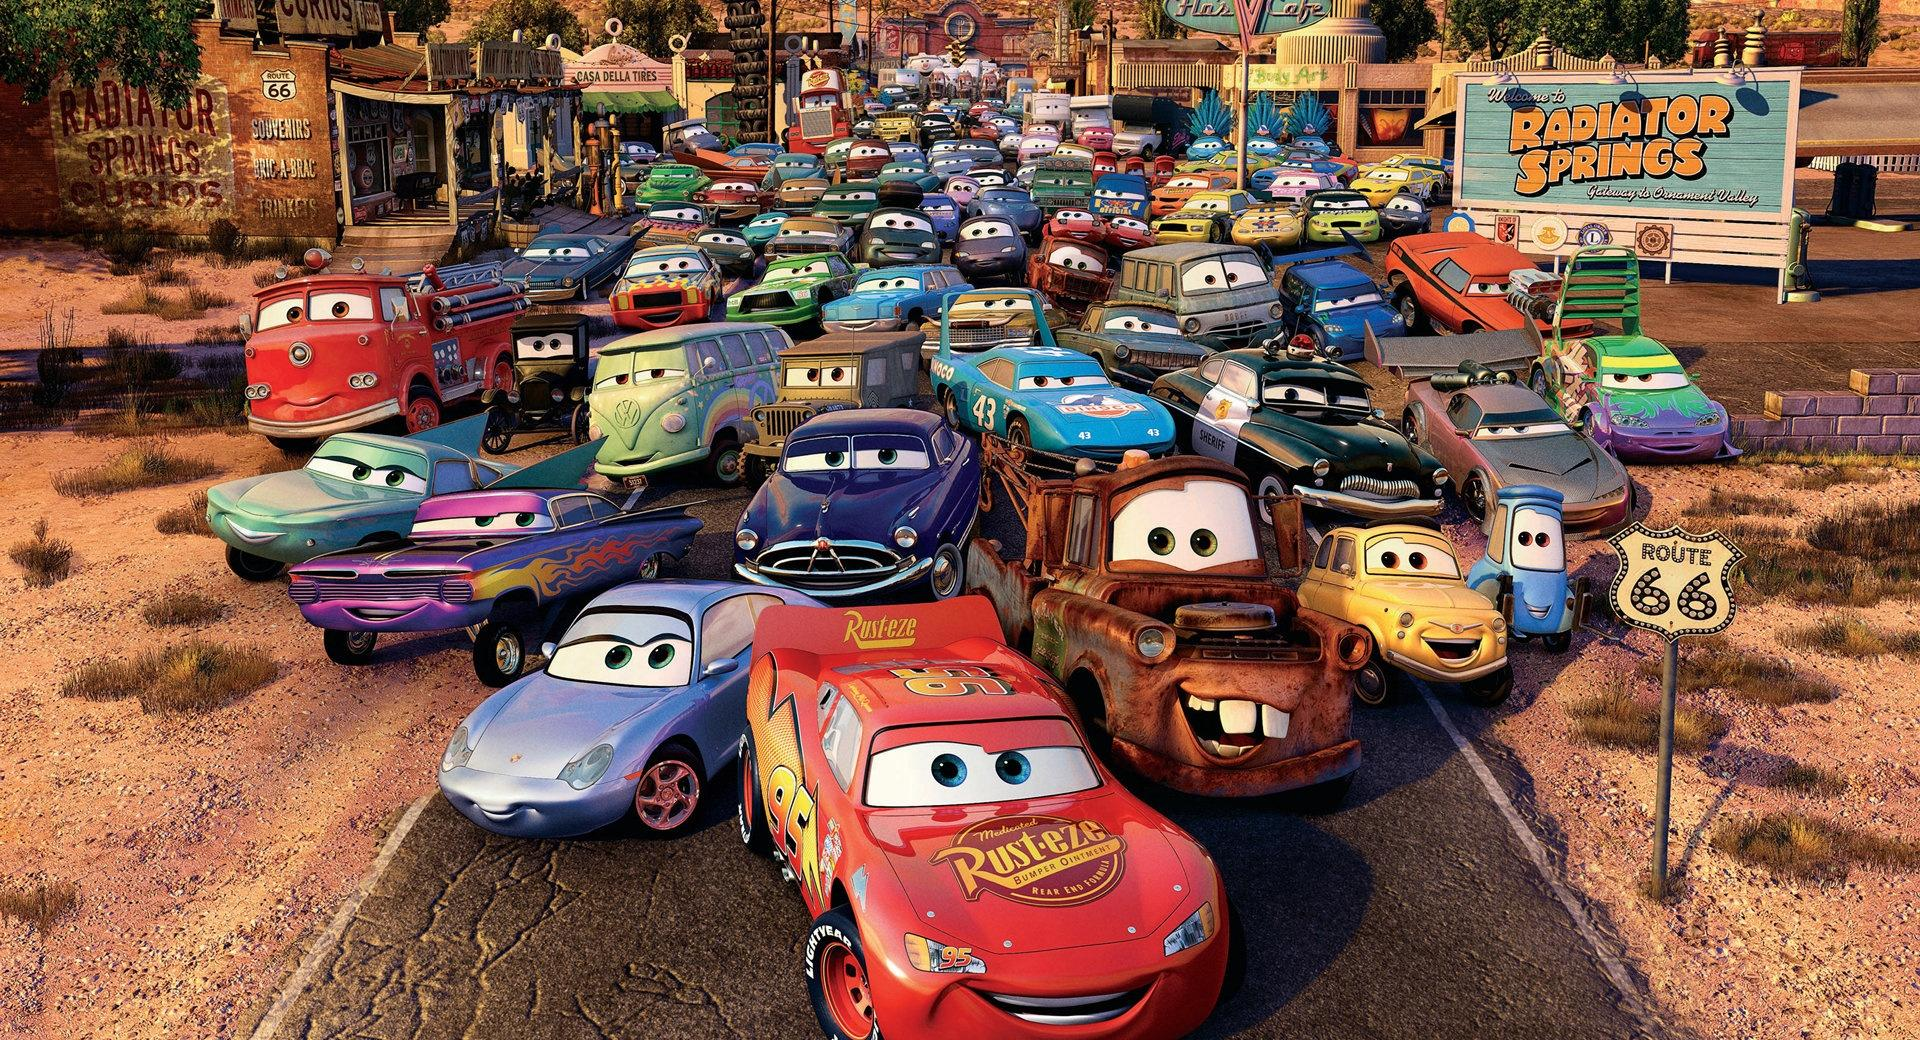 Route 66 Cars Movie wallpapers HD quality